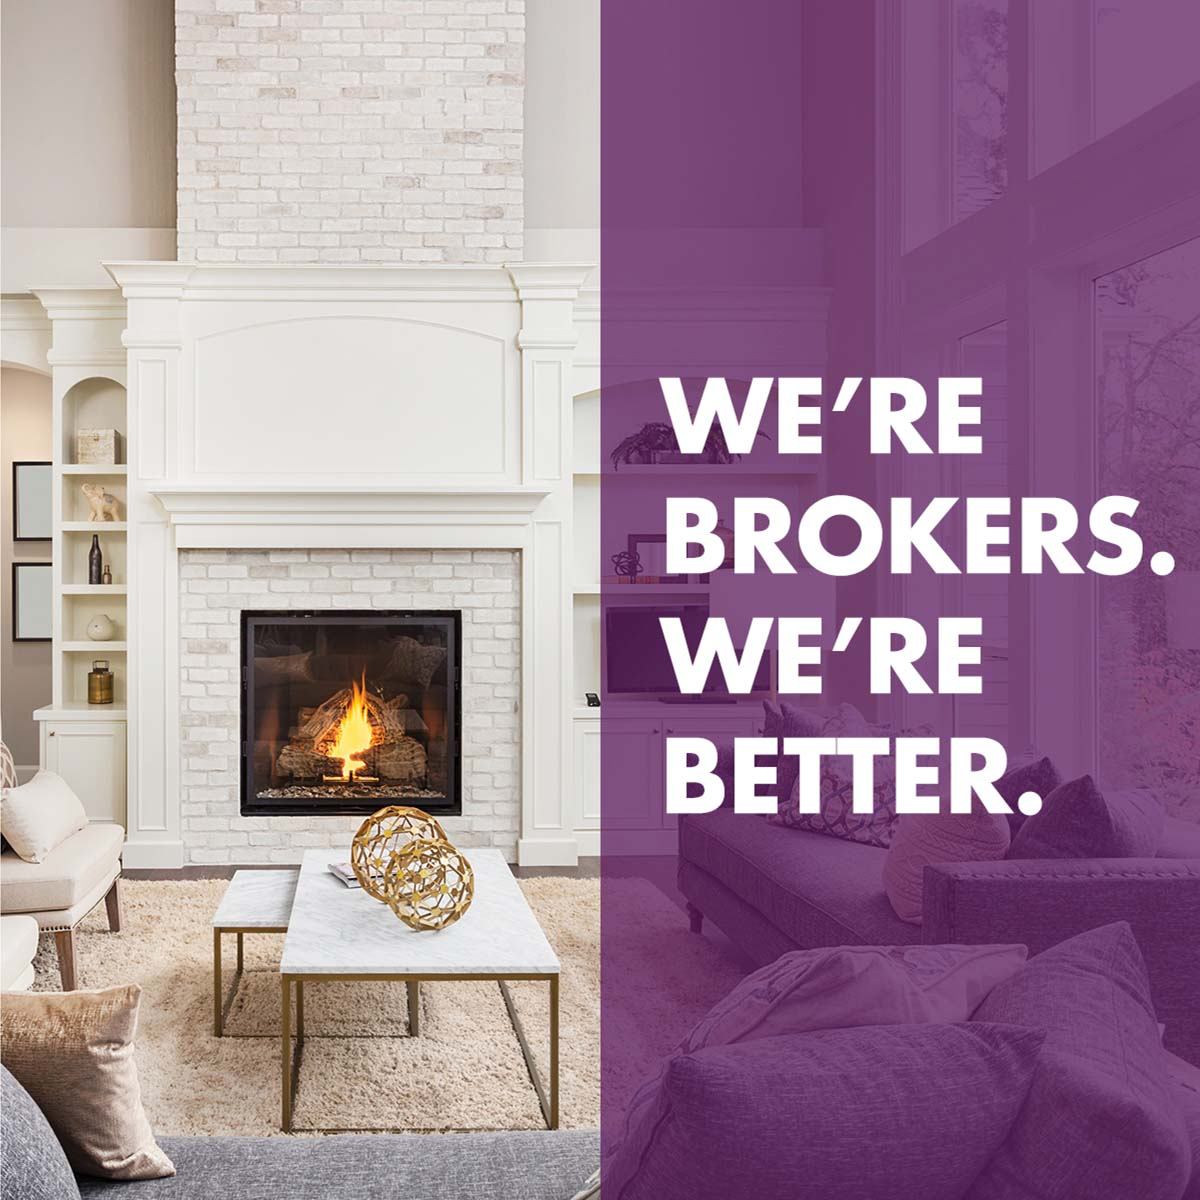 Big banks offer fewer options. We shop hundreds of lenders to find the best loan for you! Give us a ring.<br>http://pic.twitter.com/AVh6t7AZcQ